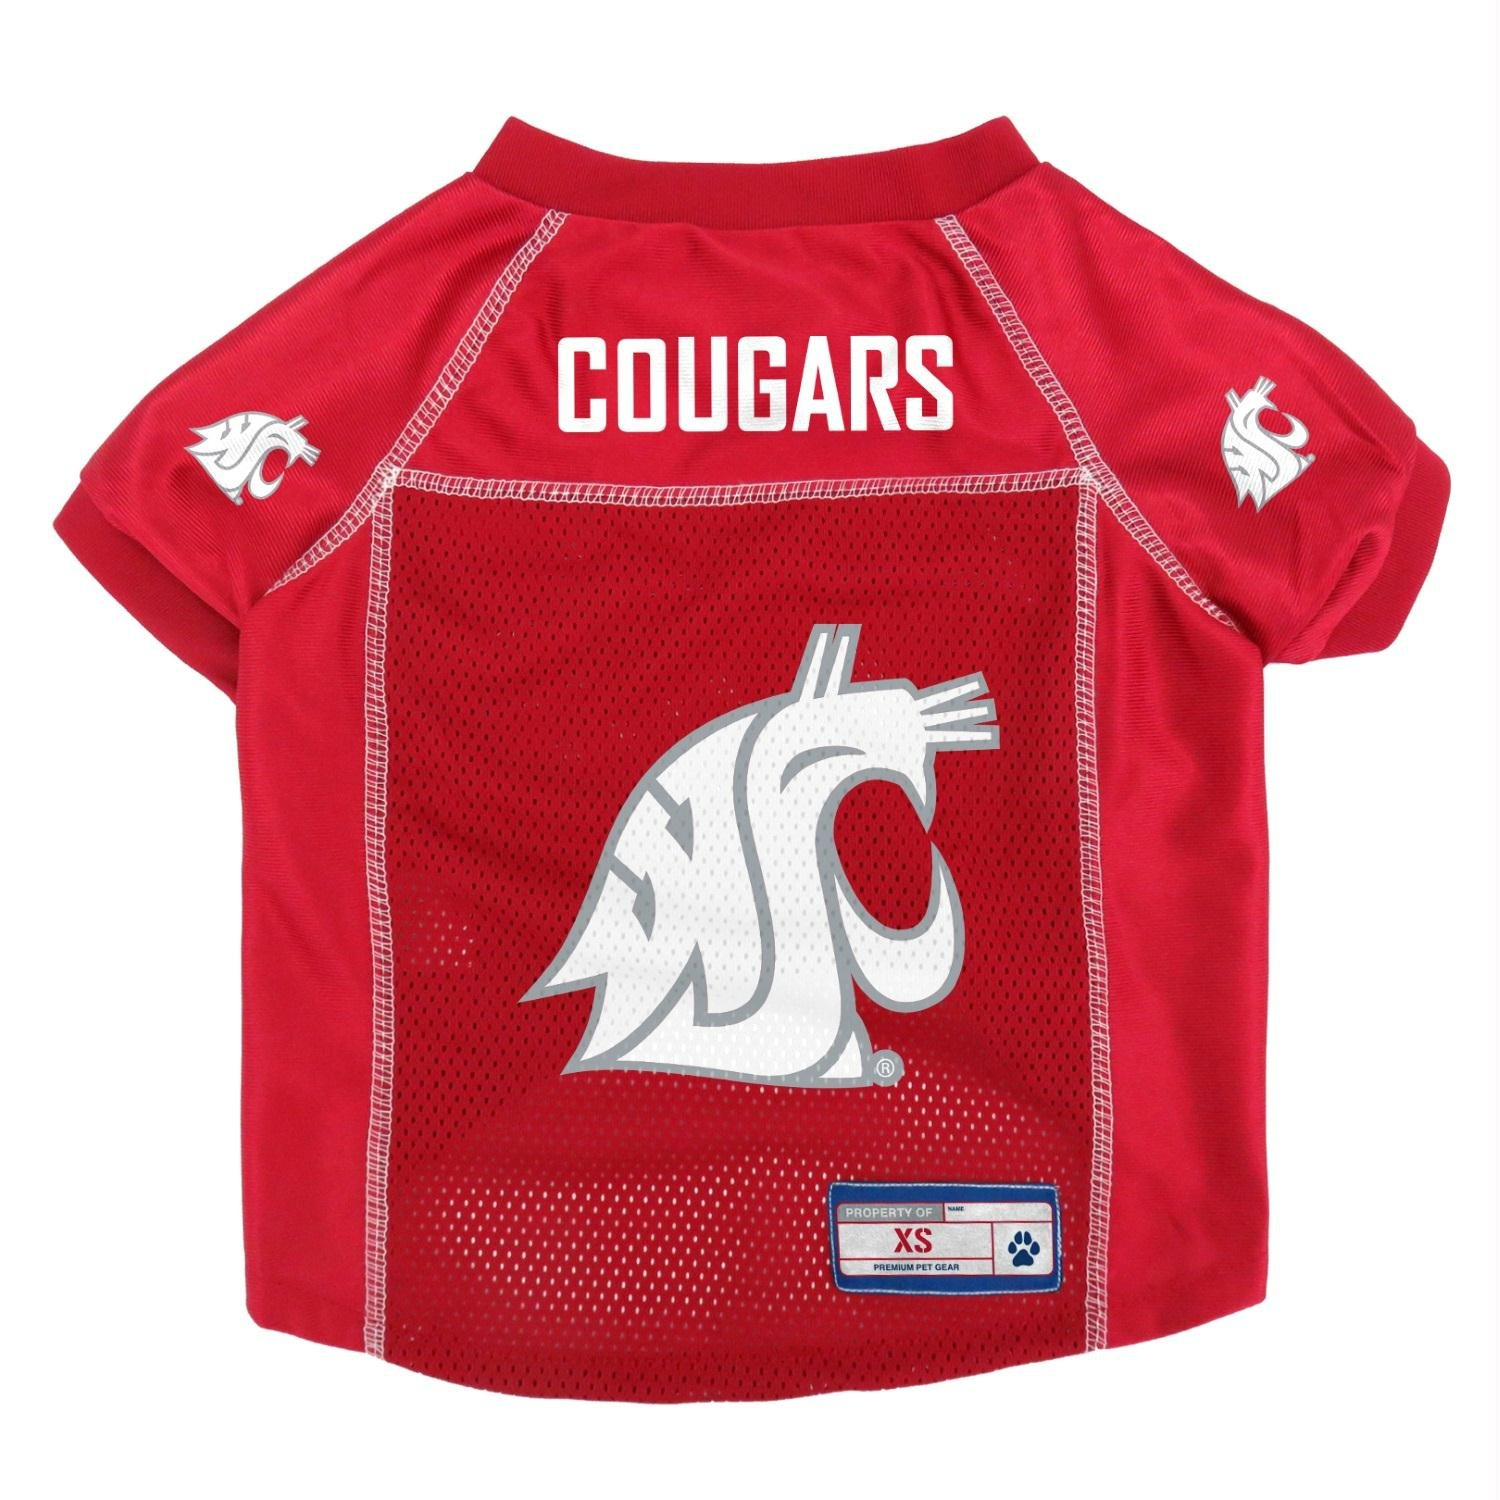 Washington State Cougars Mesh Pet Jersey XL